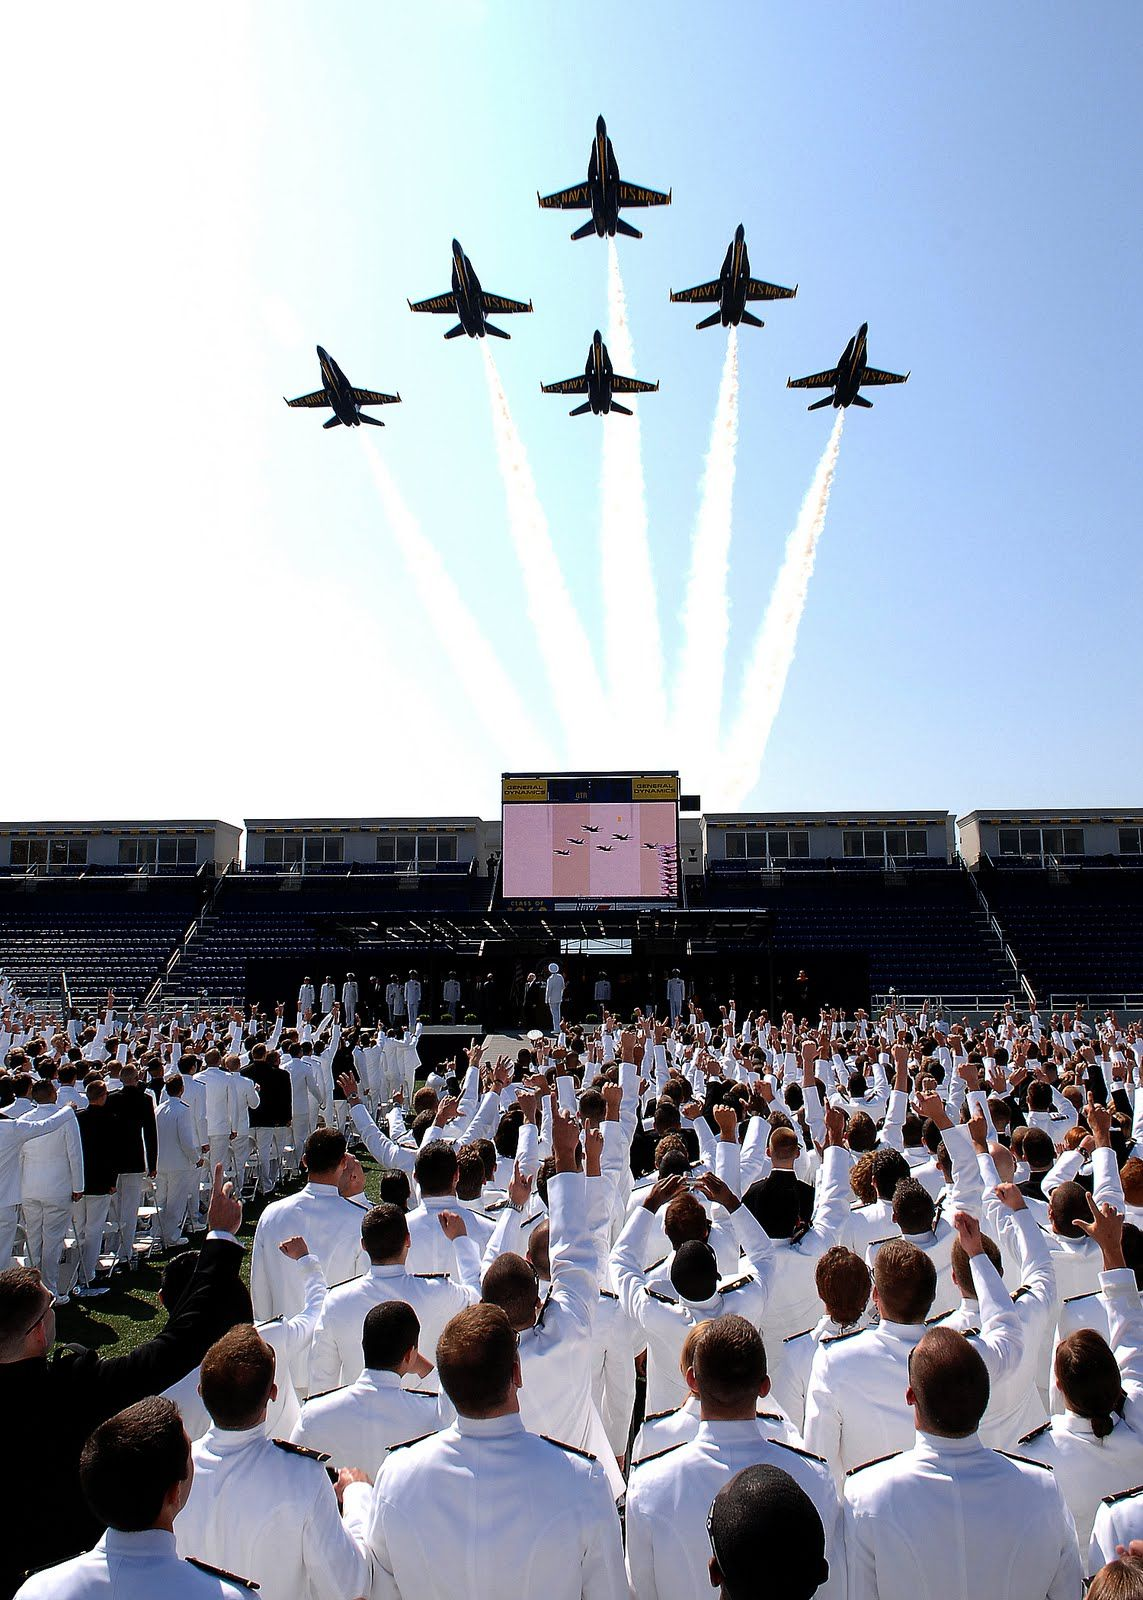 Annapolis is the home of the U.S. Naval Academy and its